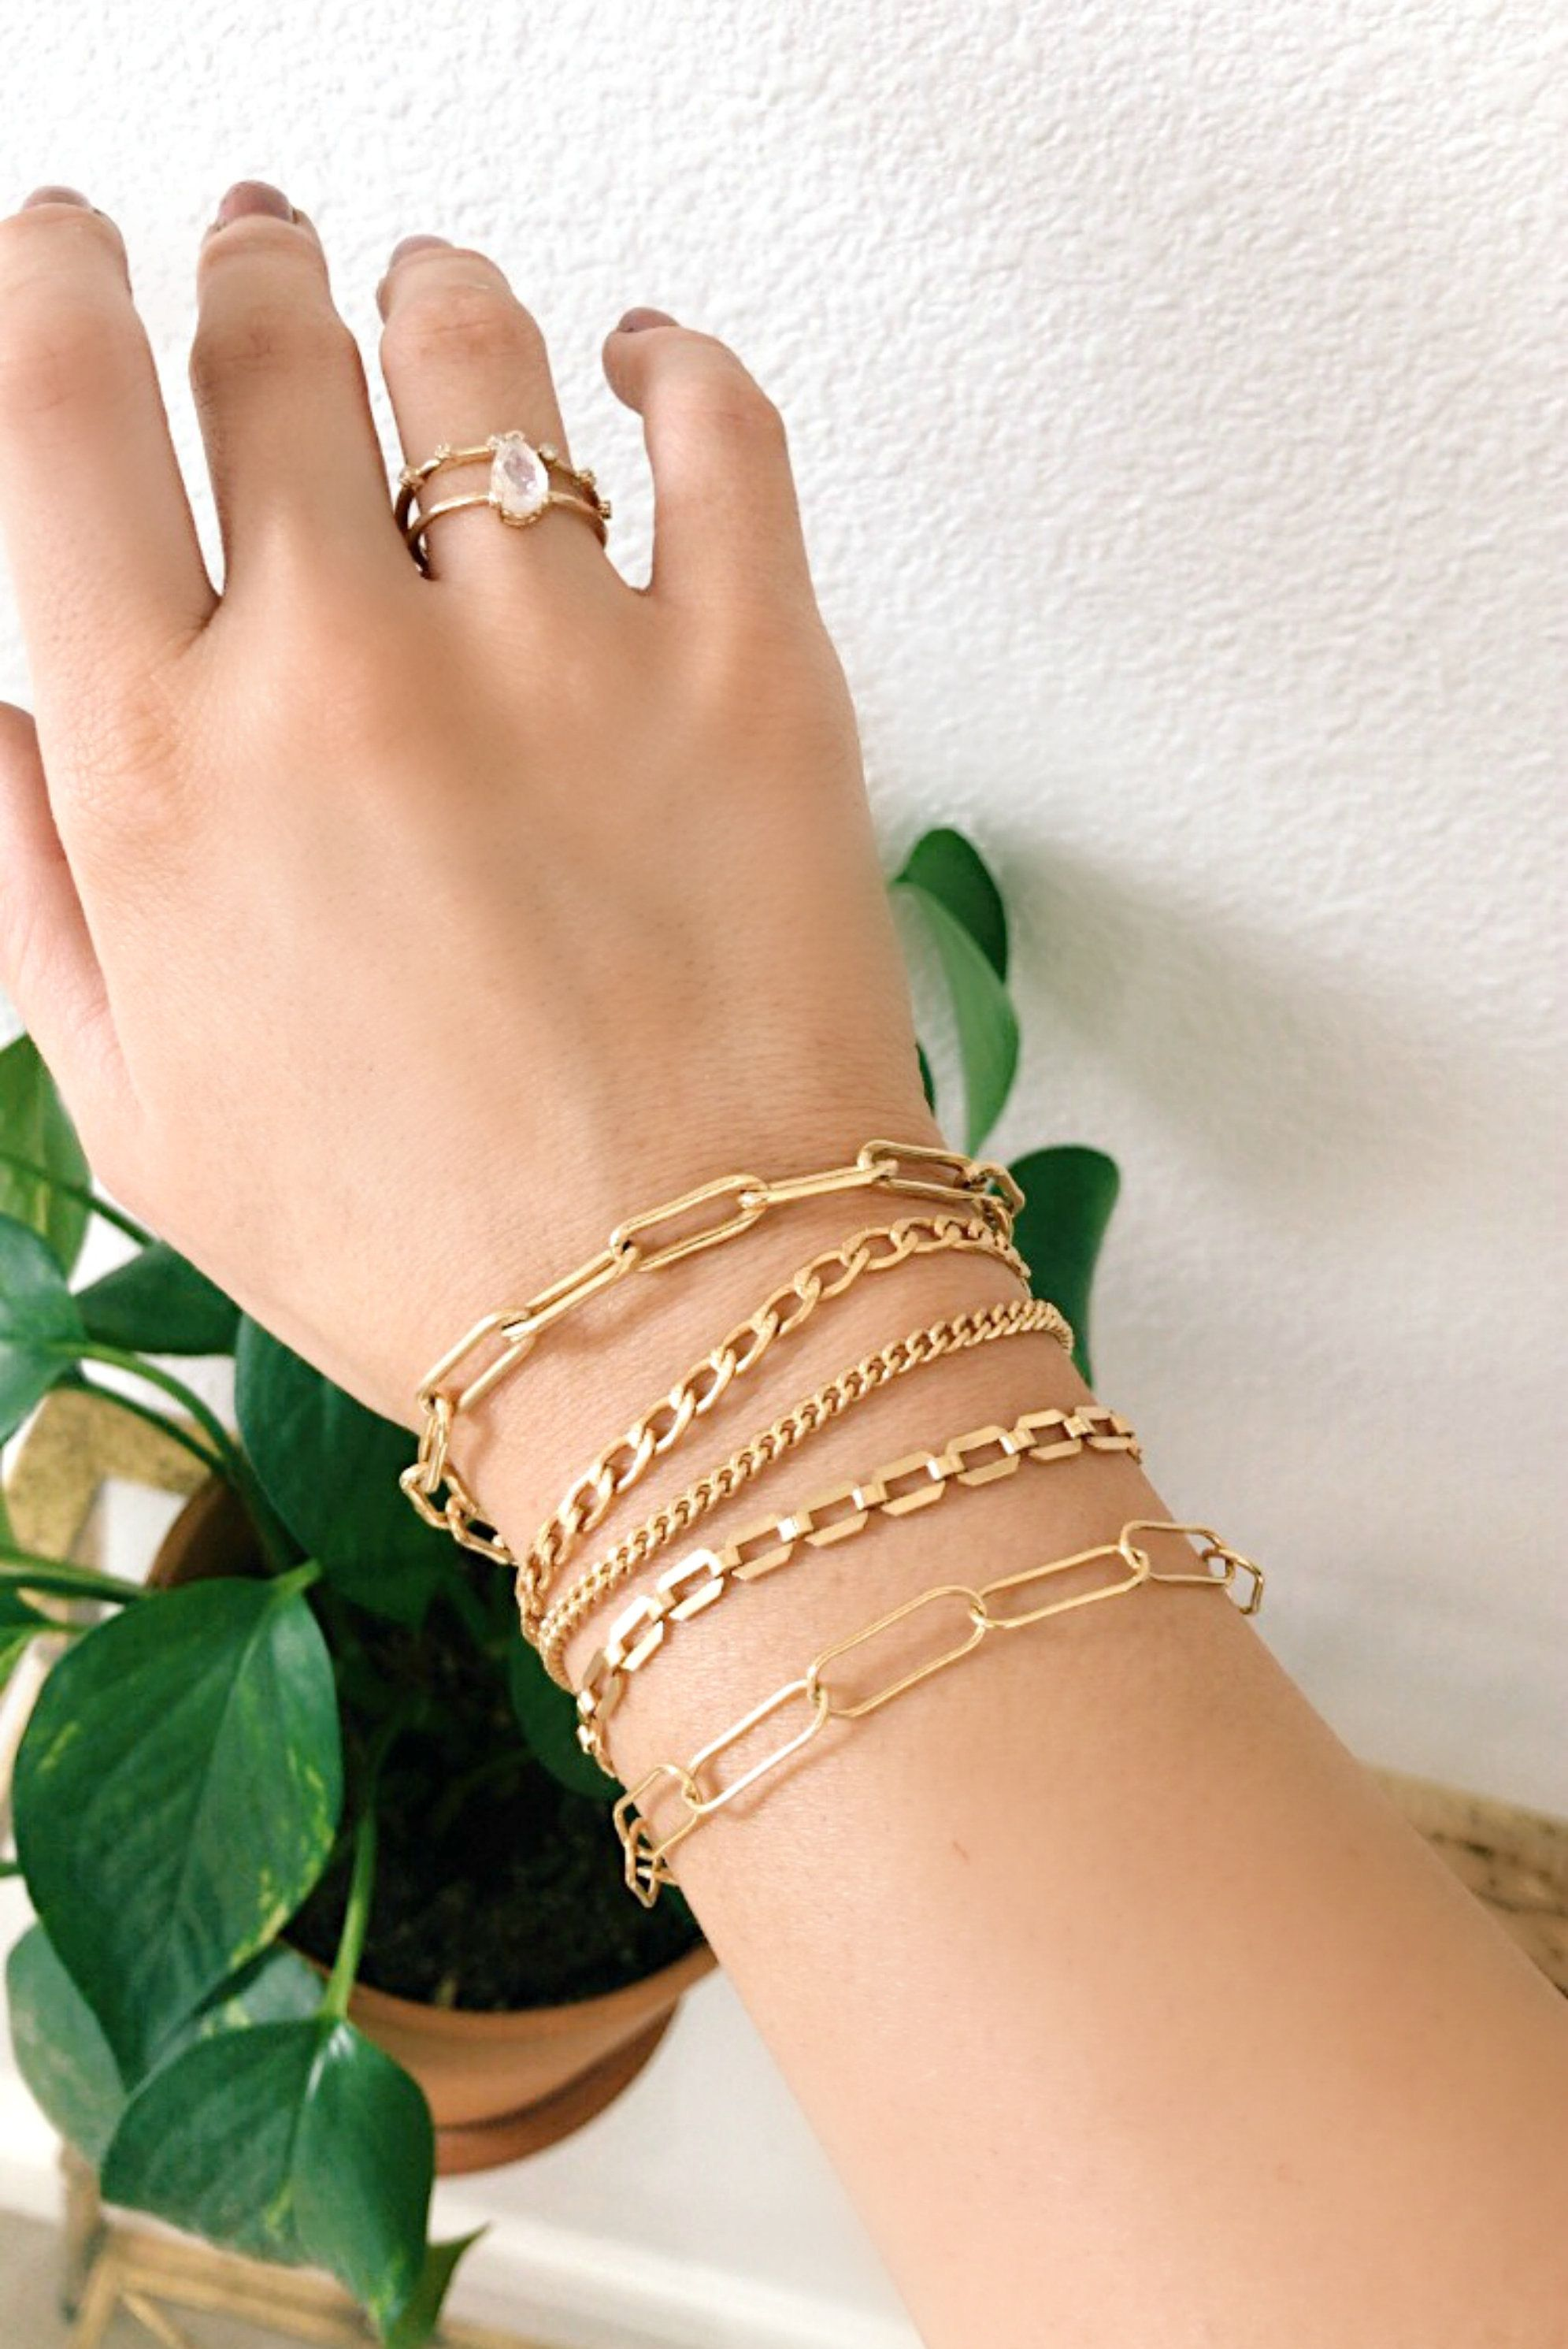 statement jewelry Chain bracelets gold plated jewelry handmade jewelry gifts for her Brass bracelets gifts jewelry women gifts